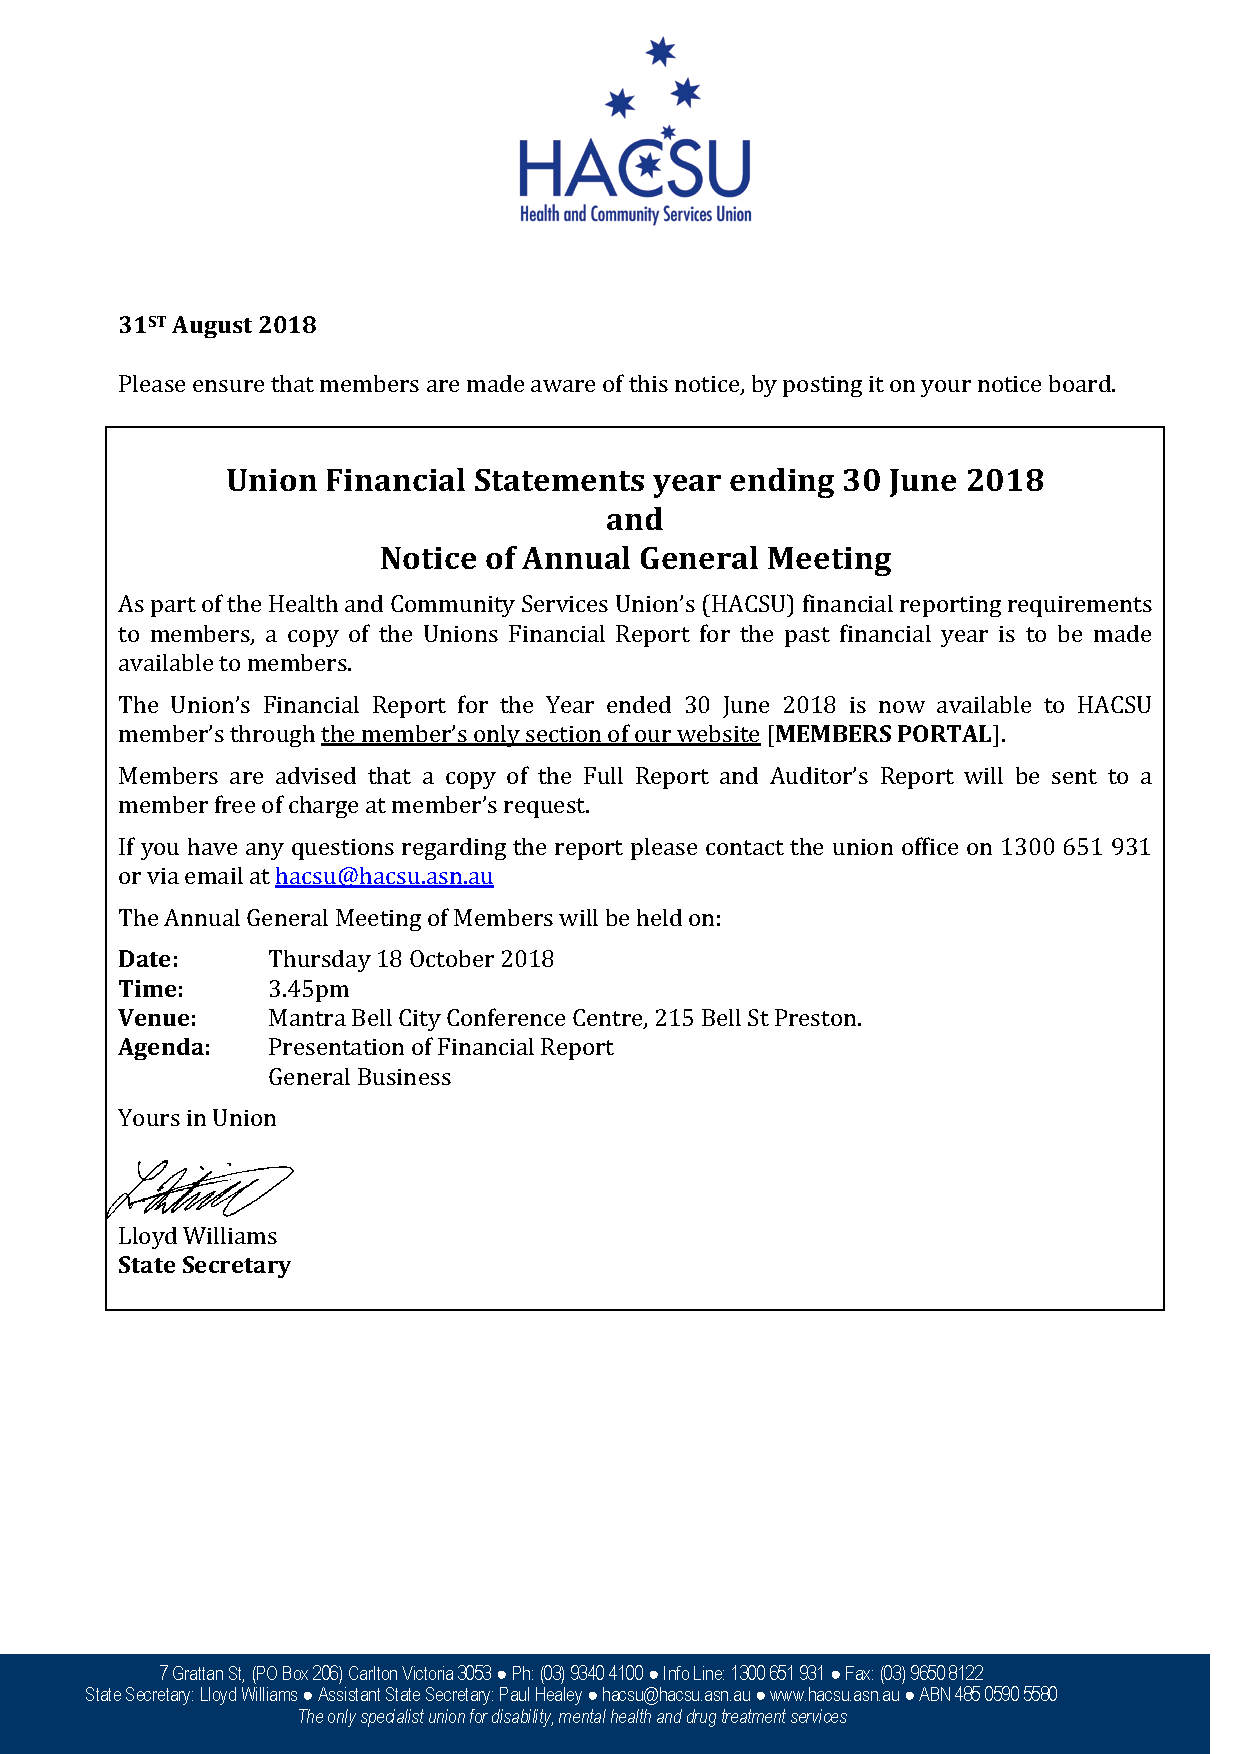 Fin Report and AGM Notice 2018 to delegates